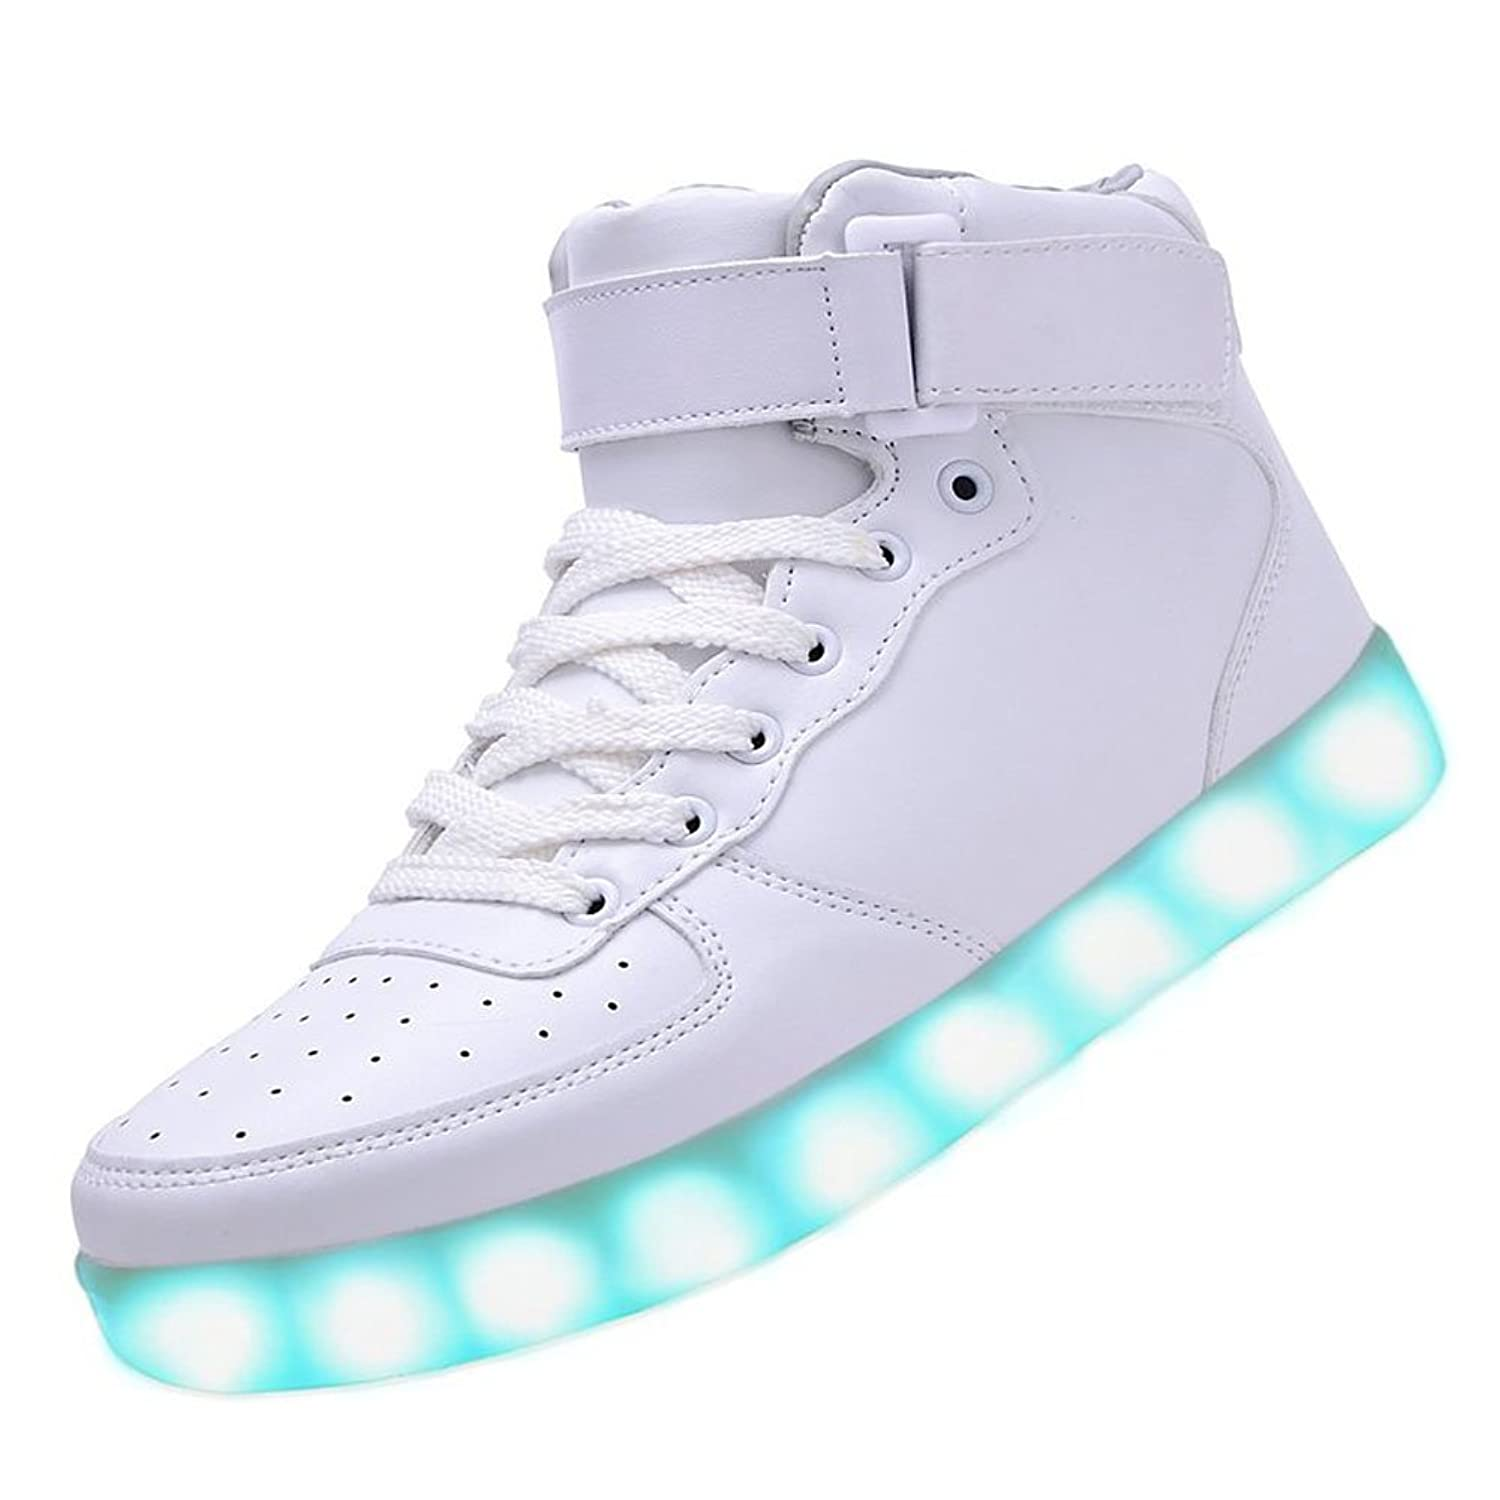 3s Women Men High Top USB Charging LED Sport Shoes Flashing Sneakers Trainers Winter Use